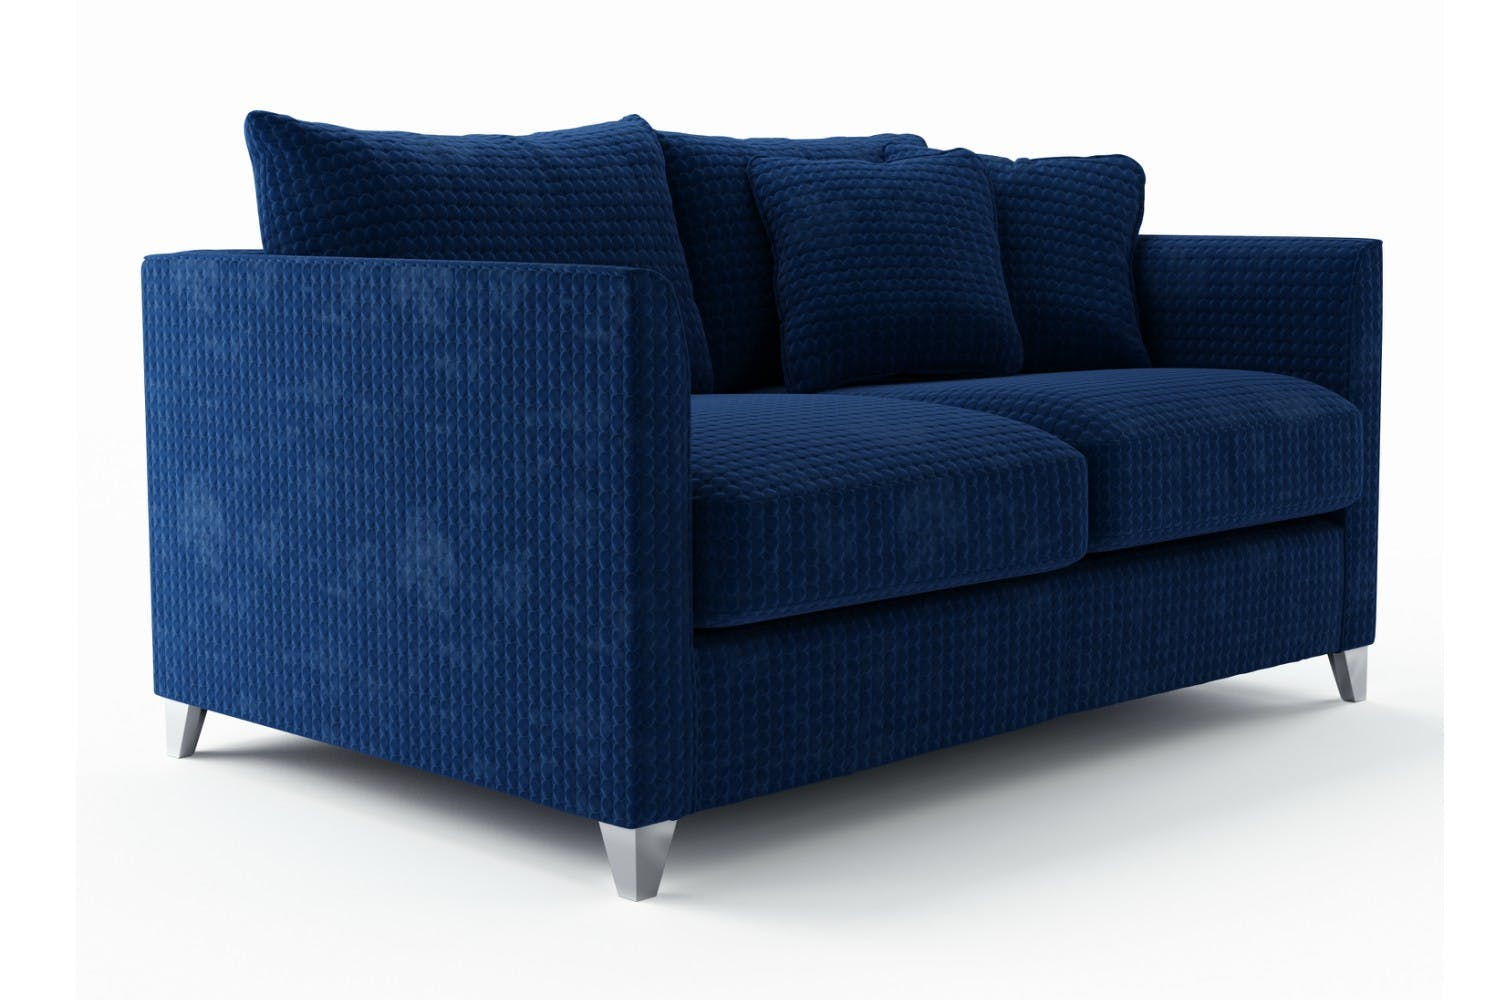 Zoey 2 seater sofa 8 colour options